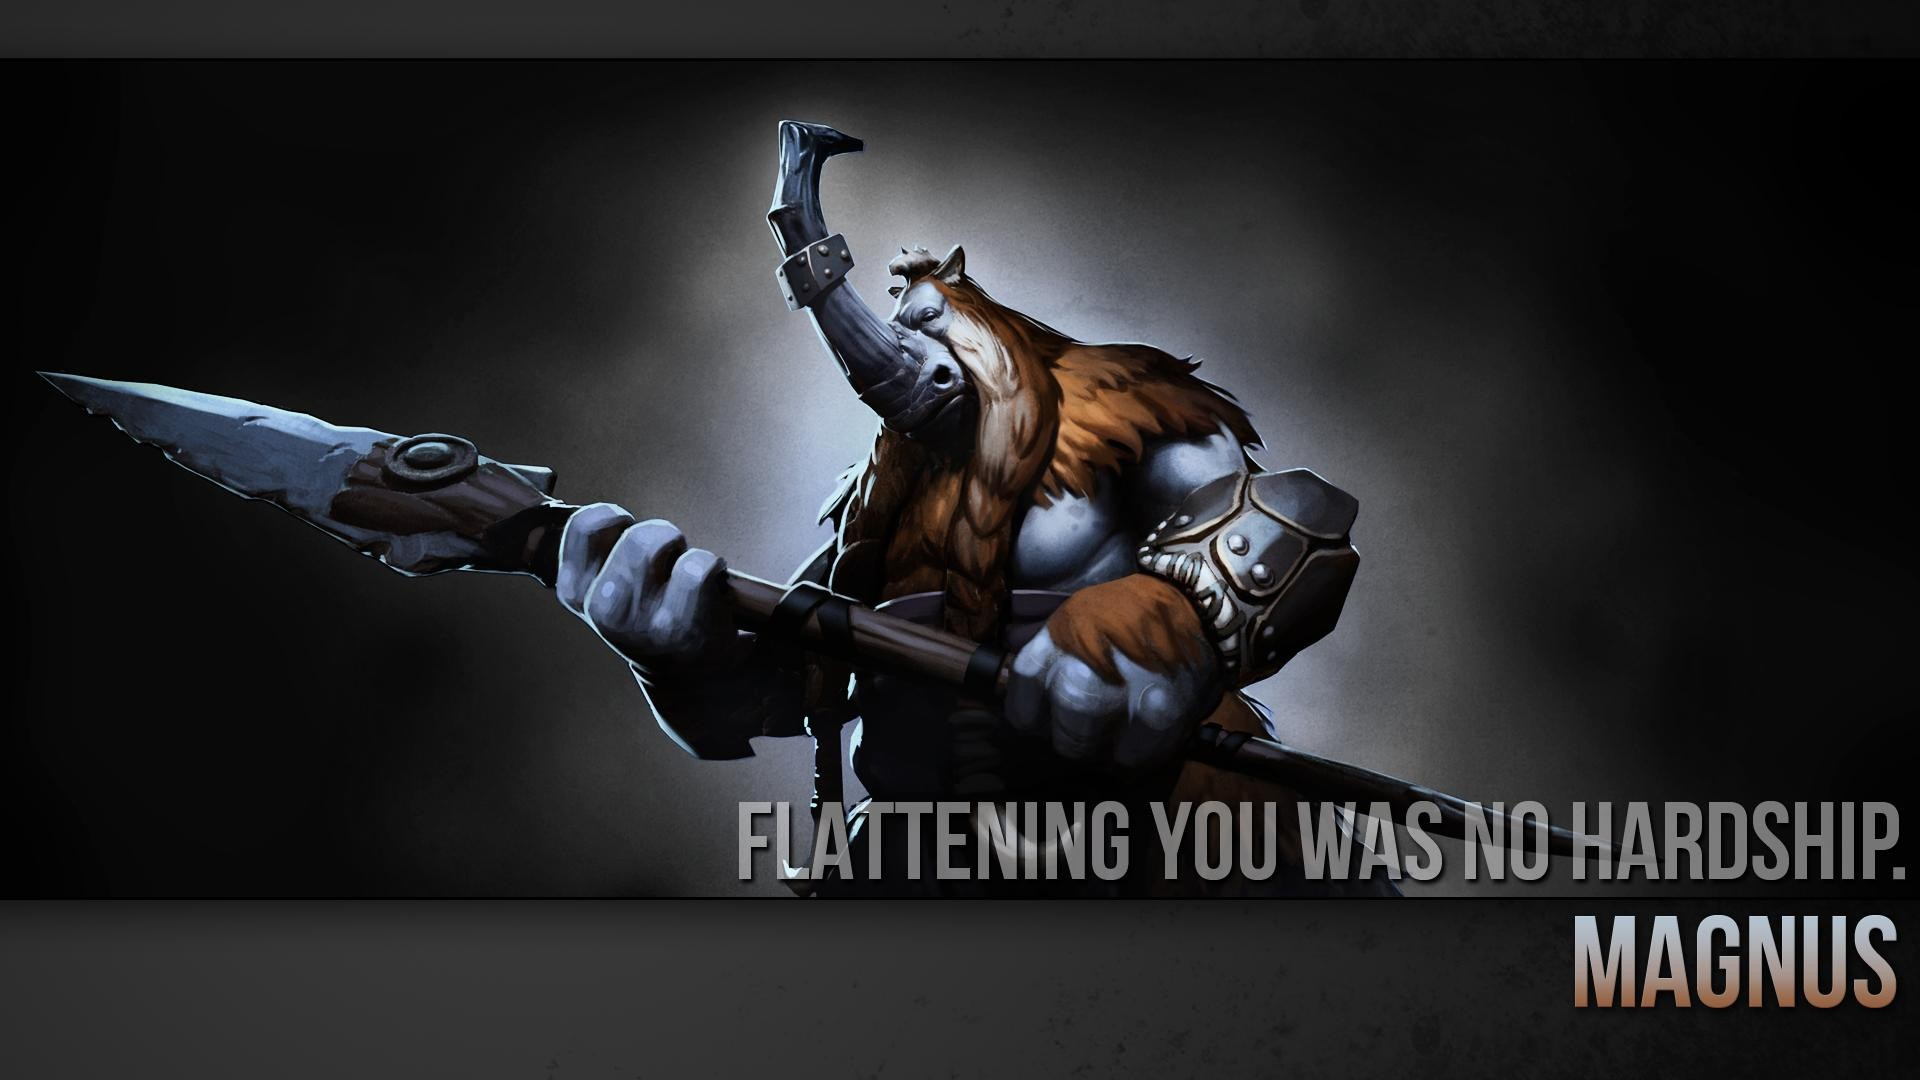 Dota Quotes Wallpaper Dota 2 Magnus Wallpapers Hd Desktop And Mobile Backgrounds